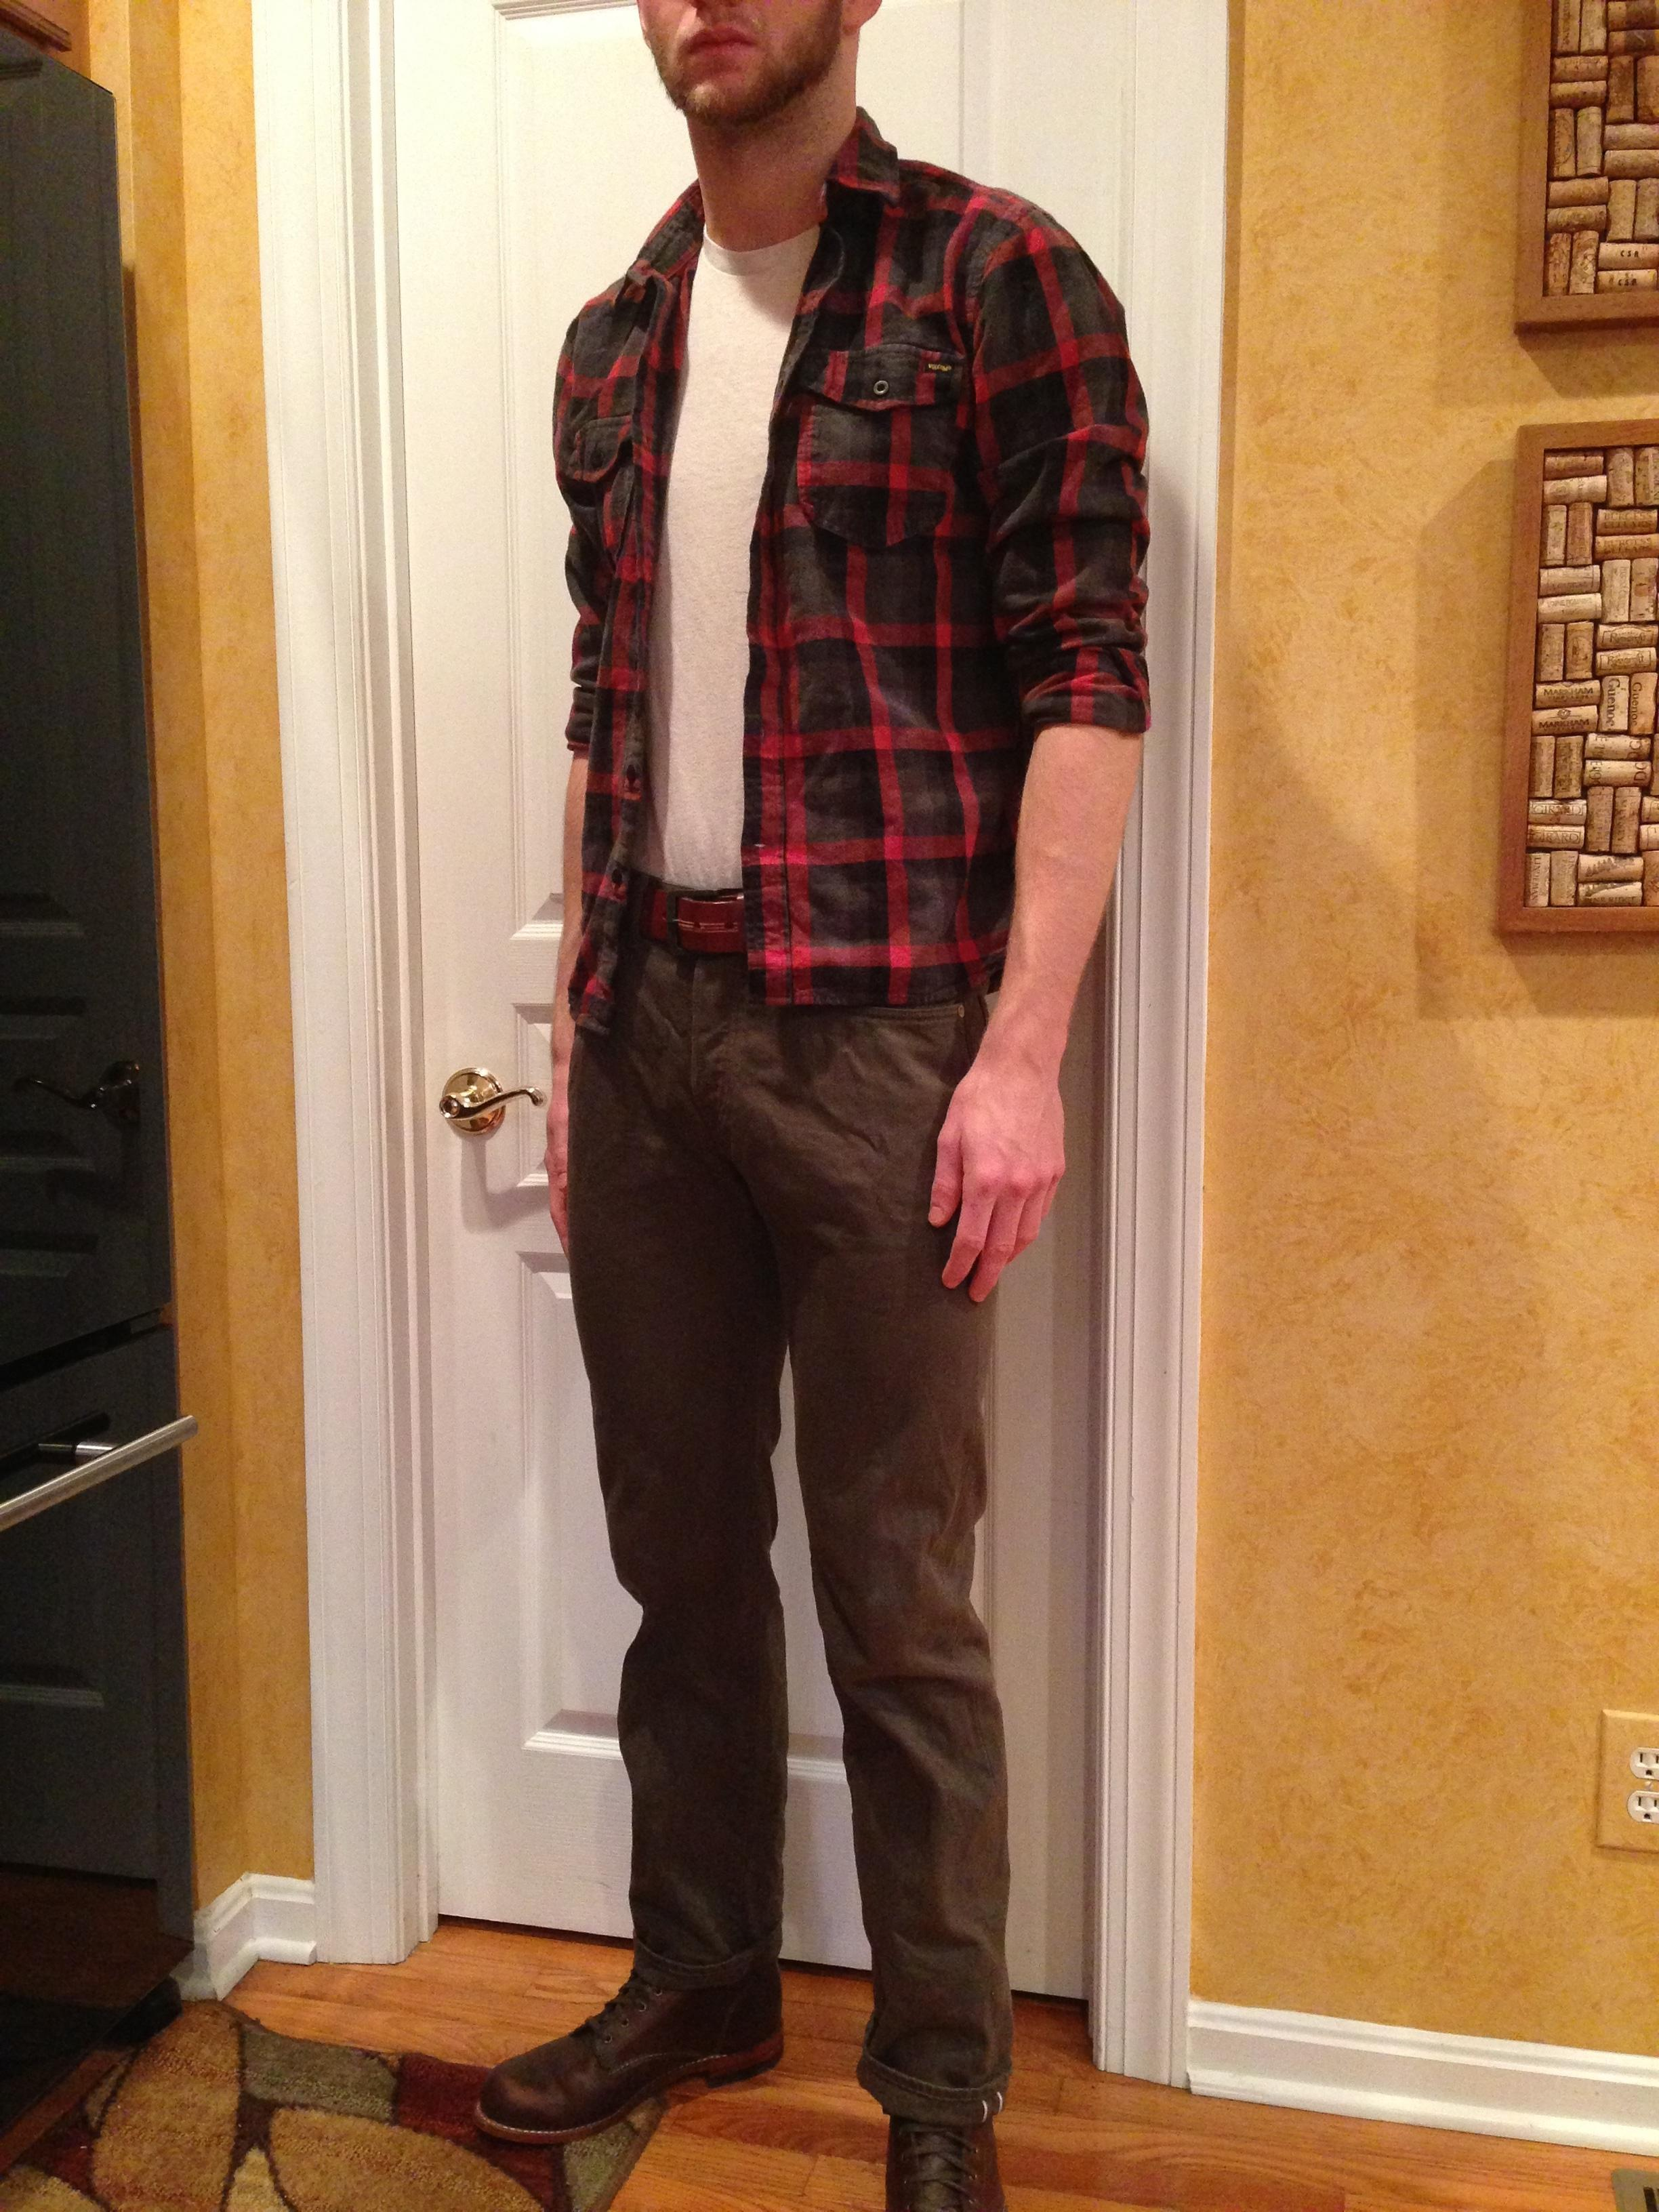 The most lumbersexual #vintage fit pic I could find. More like the  Scrawny  Paper Towels guy. Joke!